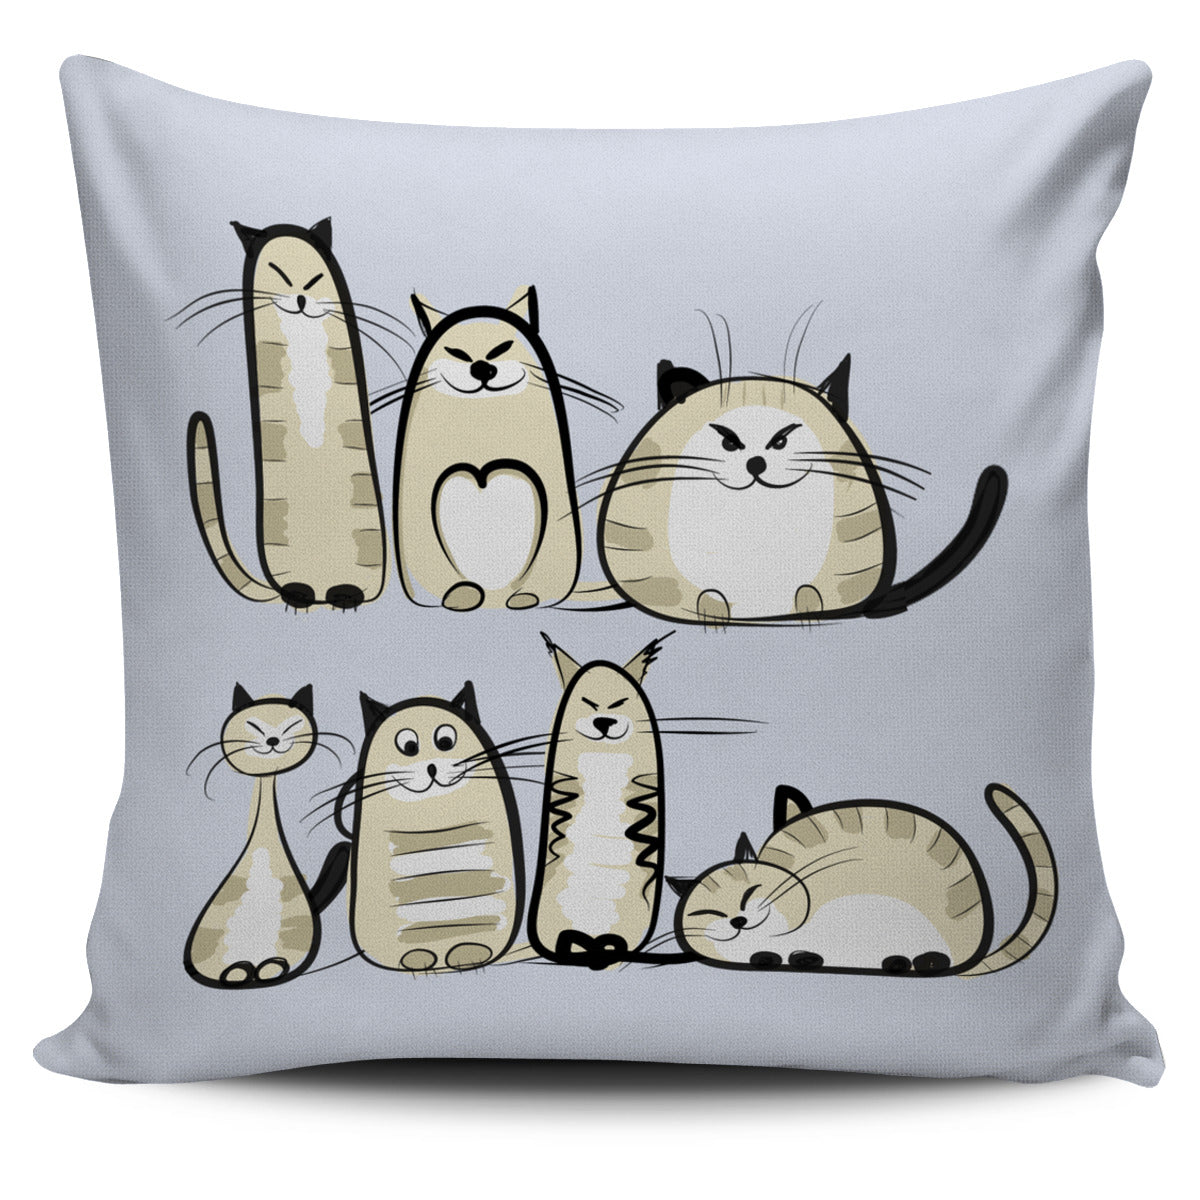 Funny Cat IV Pillow Cover - Hello Moa